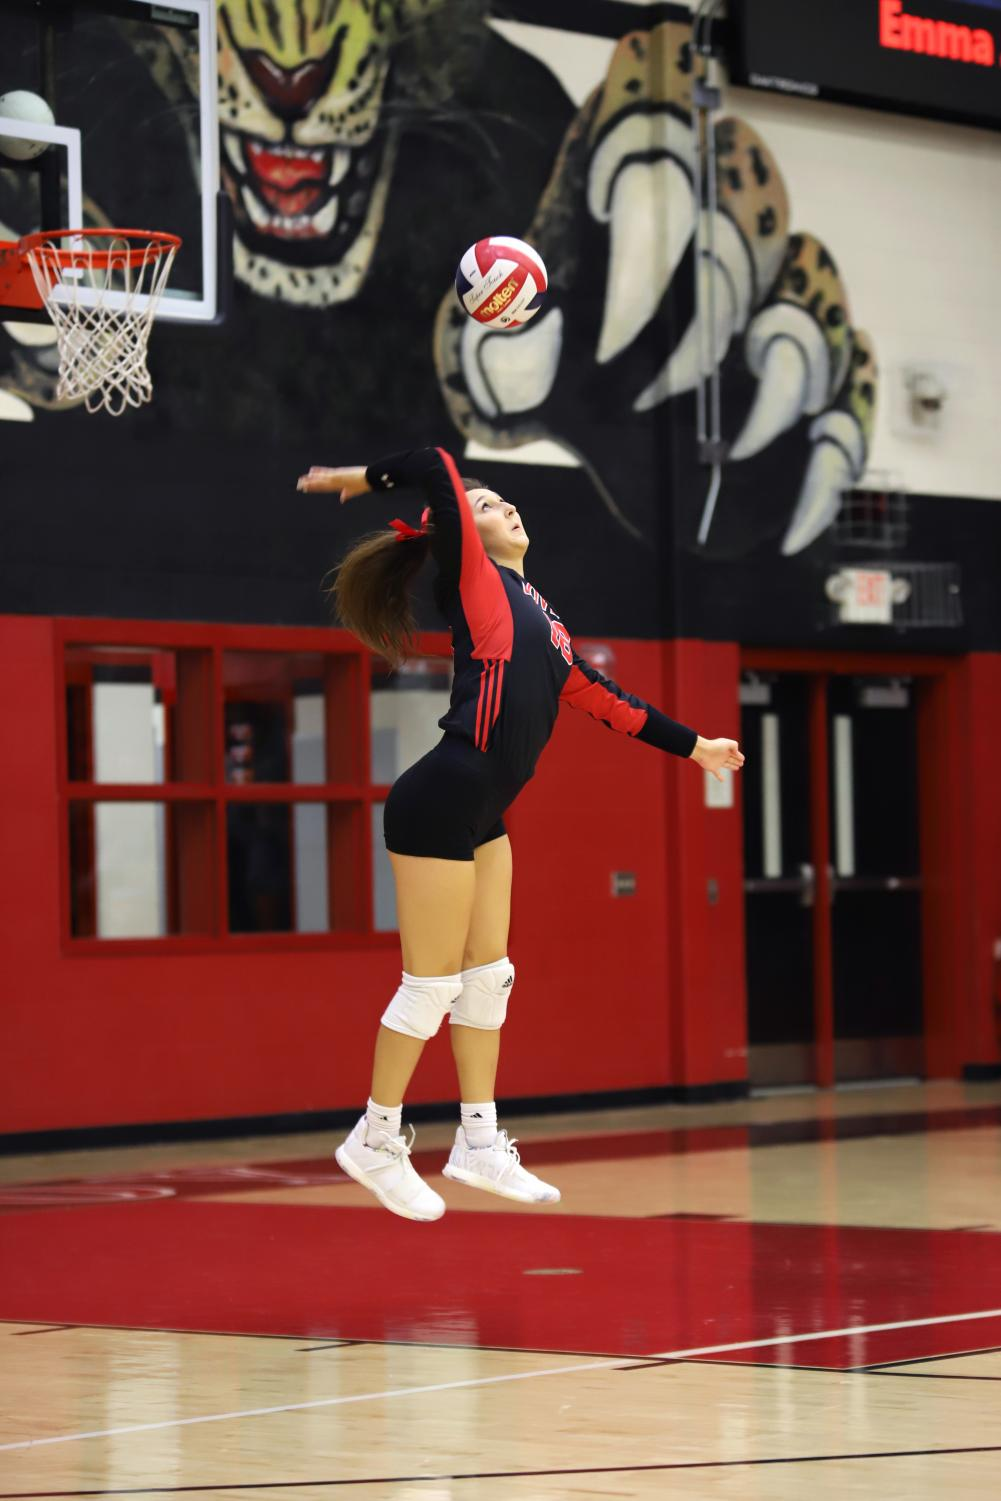 Senior+Emma+Johnson+jump+serves+during+the+first+set.+Johnson+plays+as+a+defensive+specialist+on+the+court.